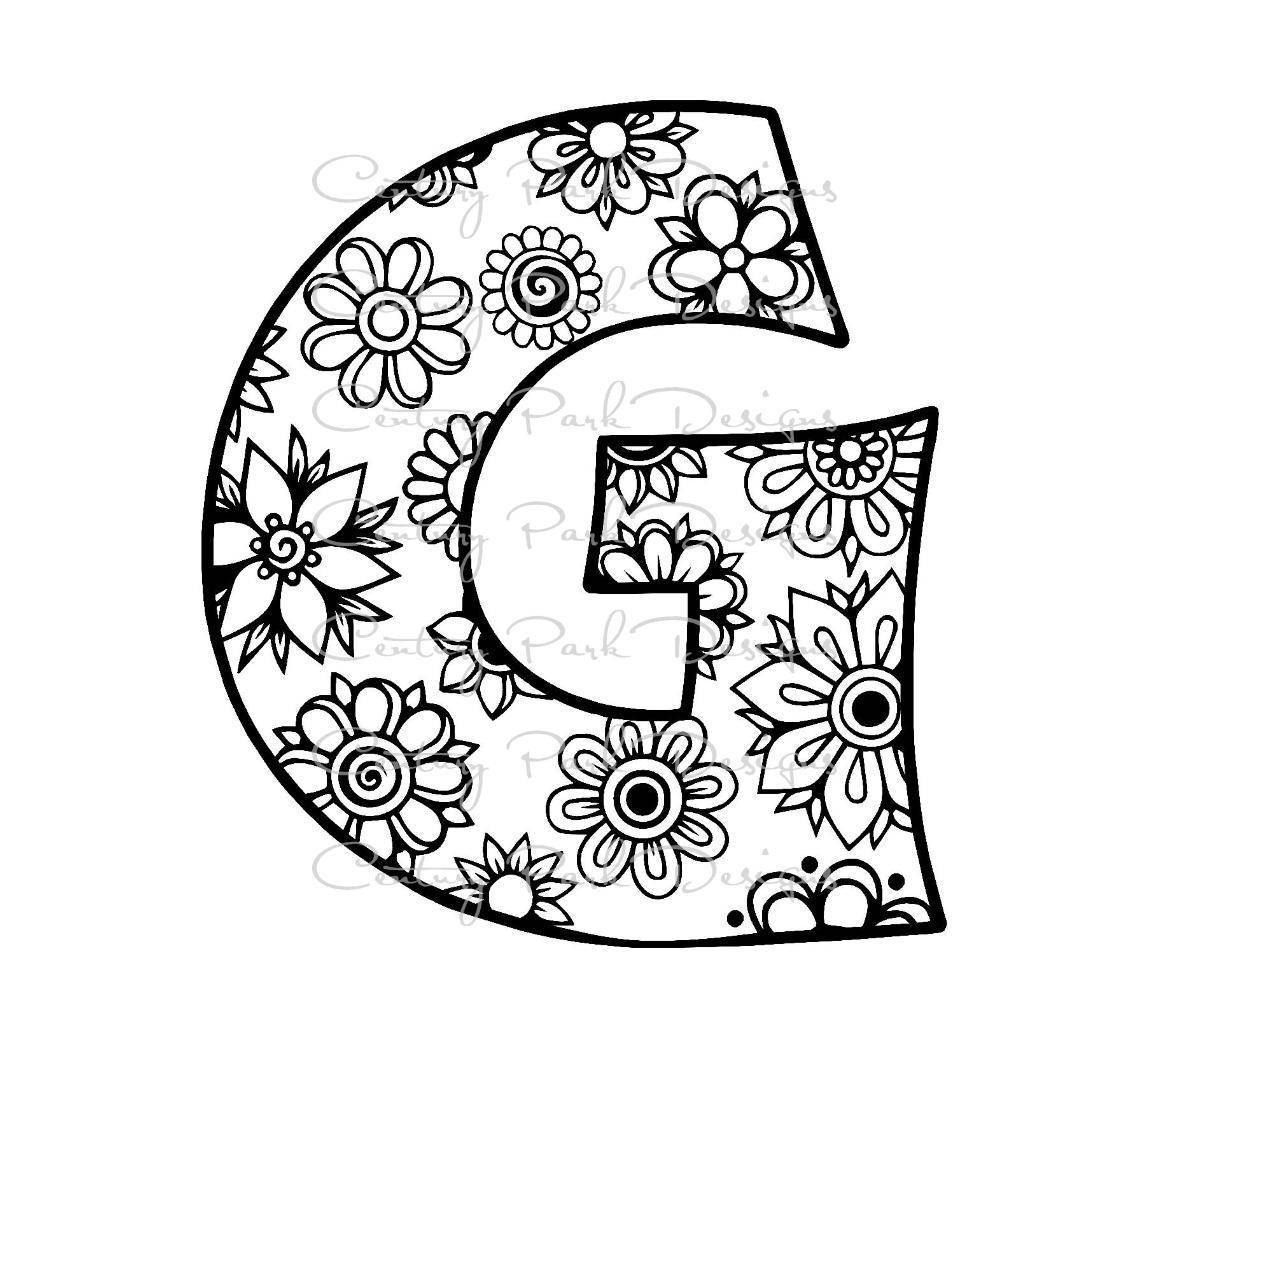 Letter G Alphabet Flowers SVG JPEG PNG Pdf Use With Silhouette Studio And Cricut Design Space